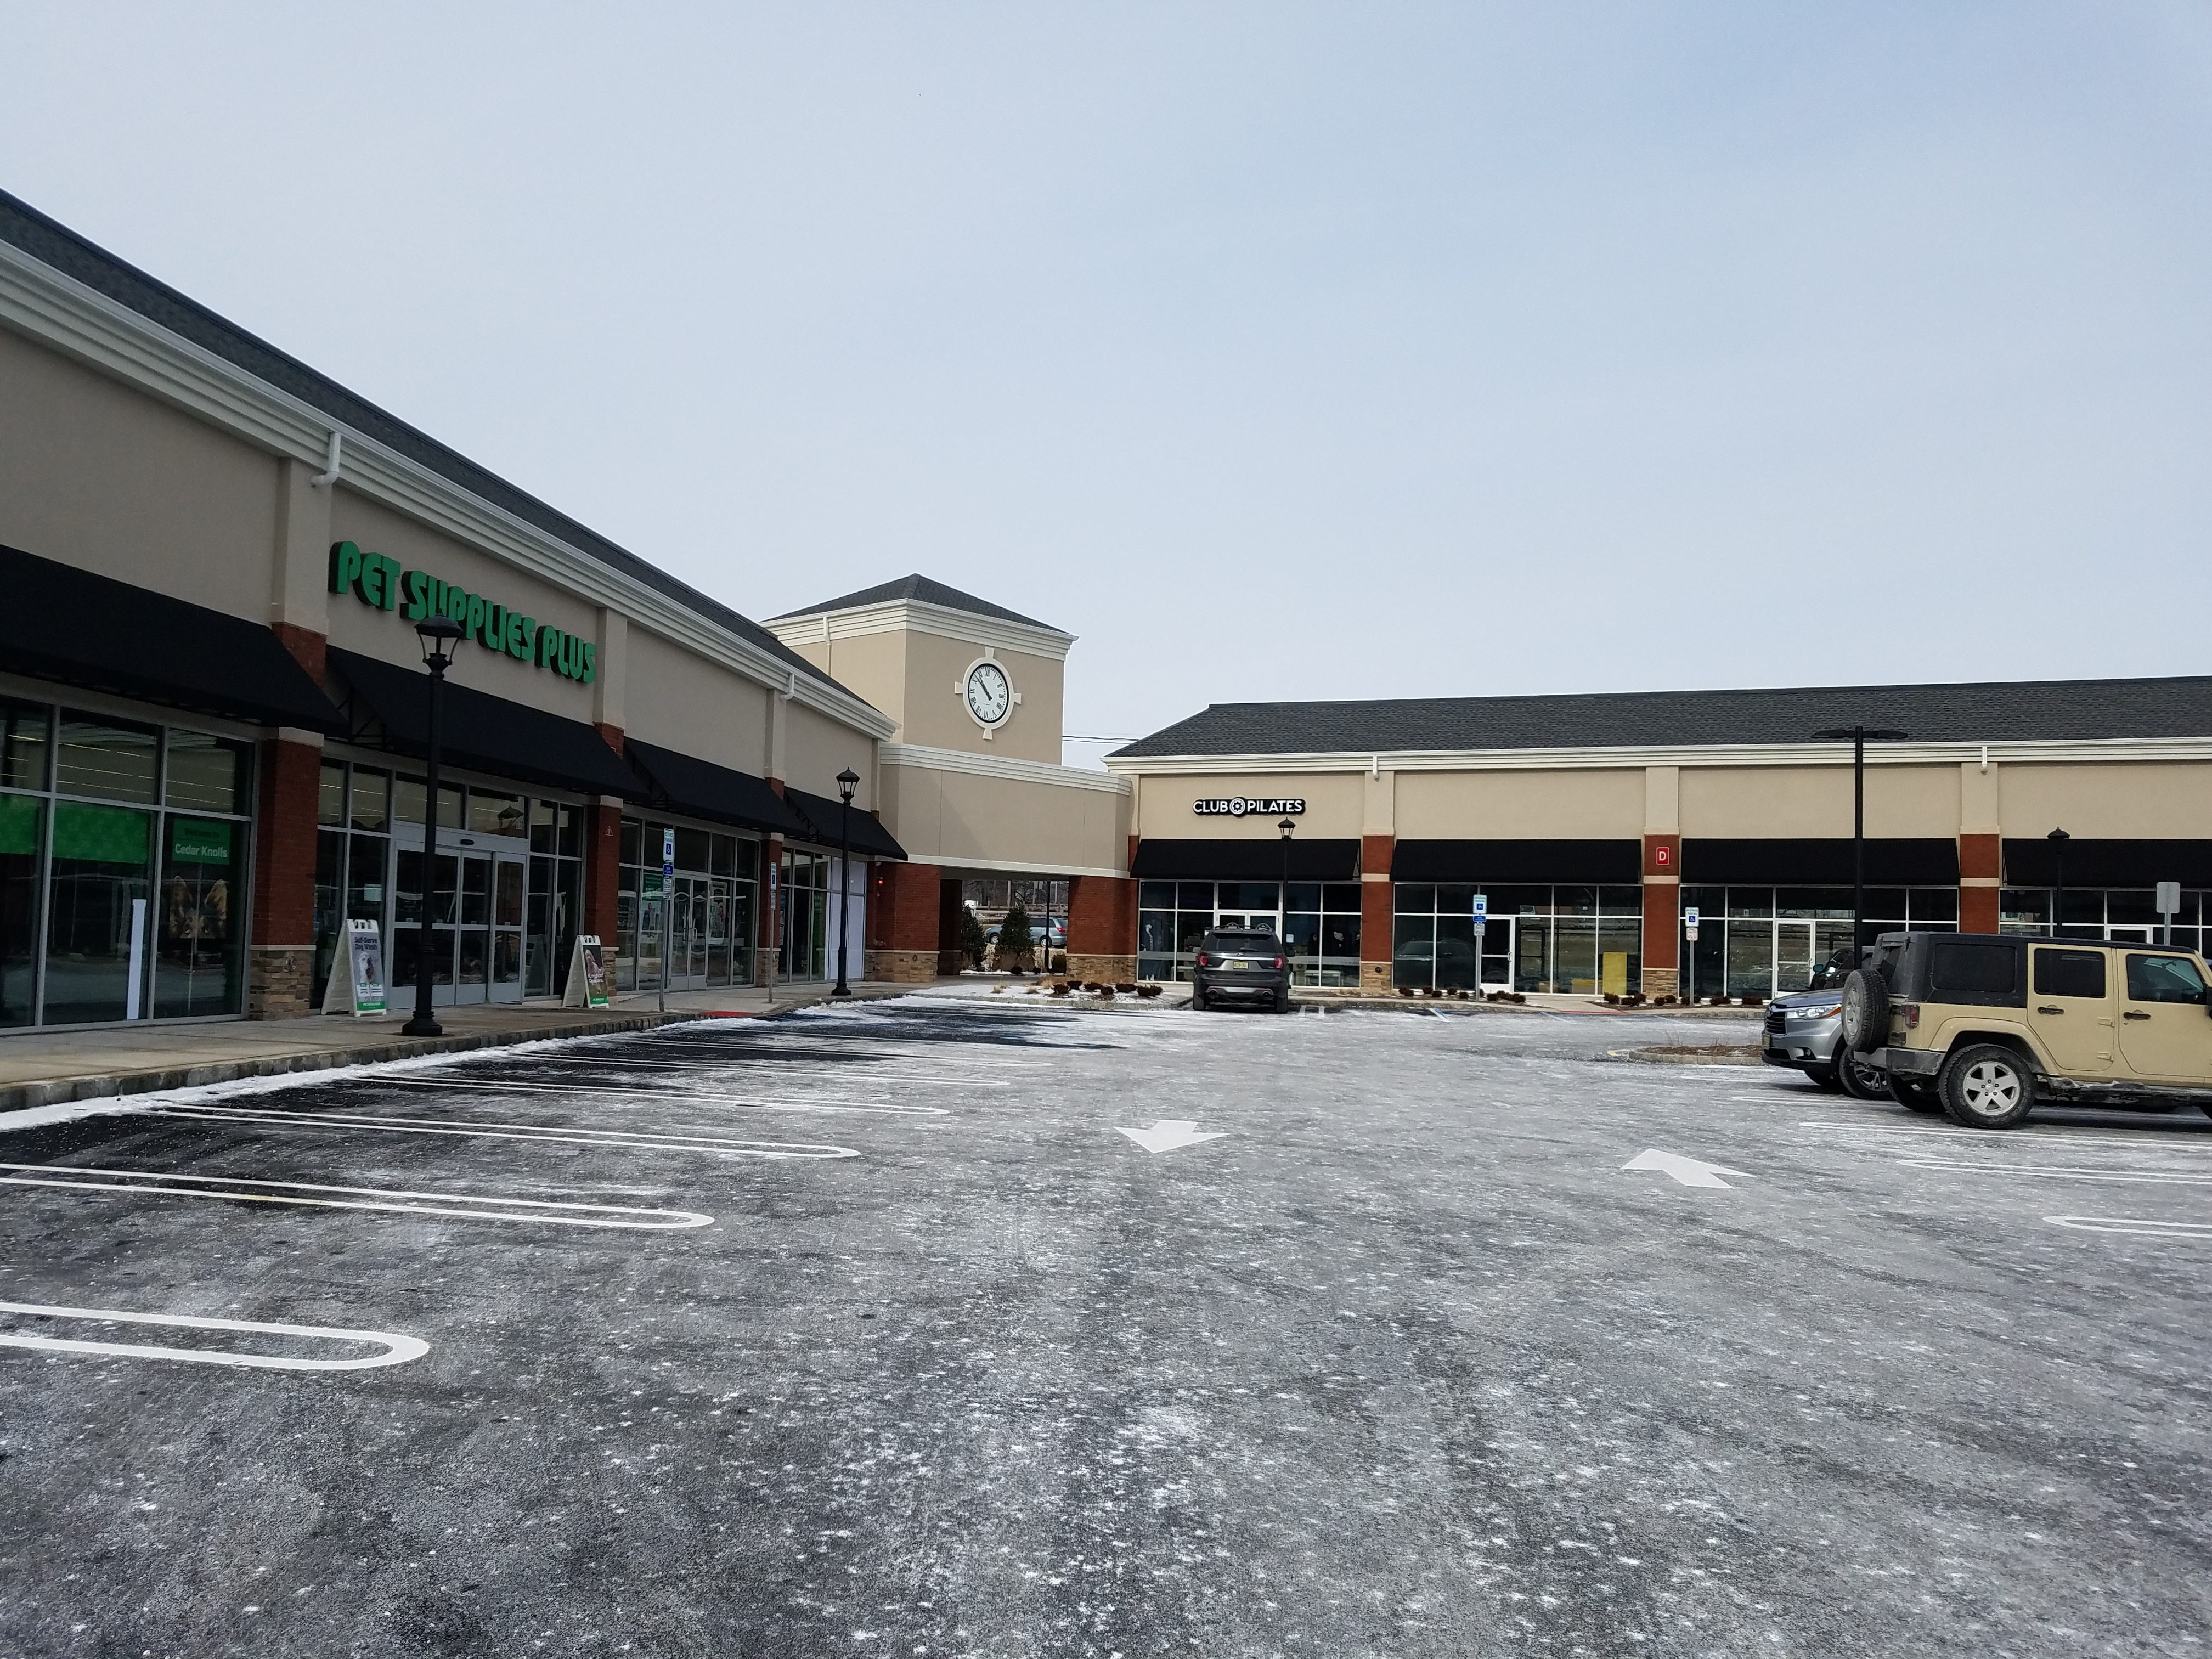 Hanover Commons Shopping Plaza